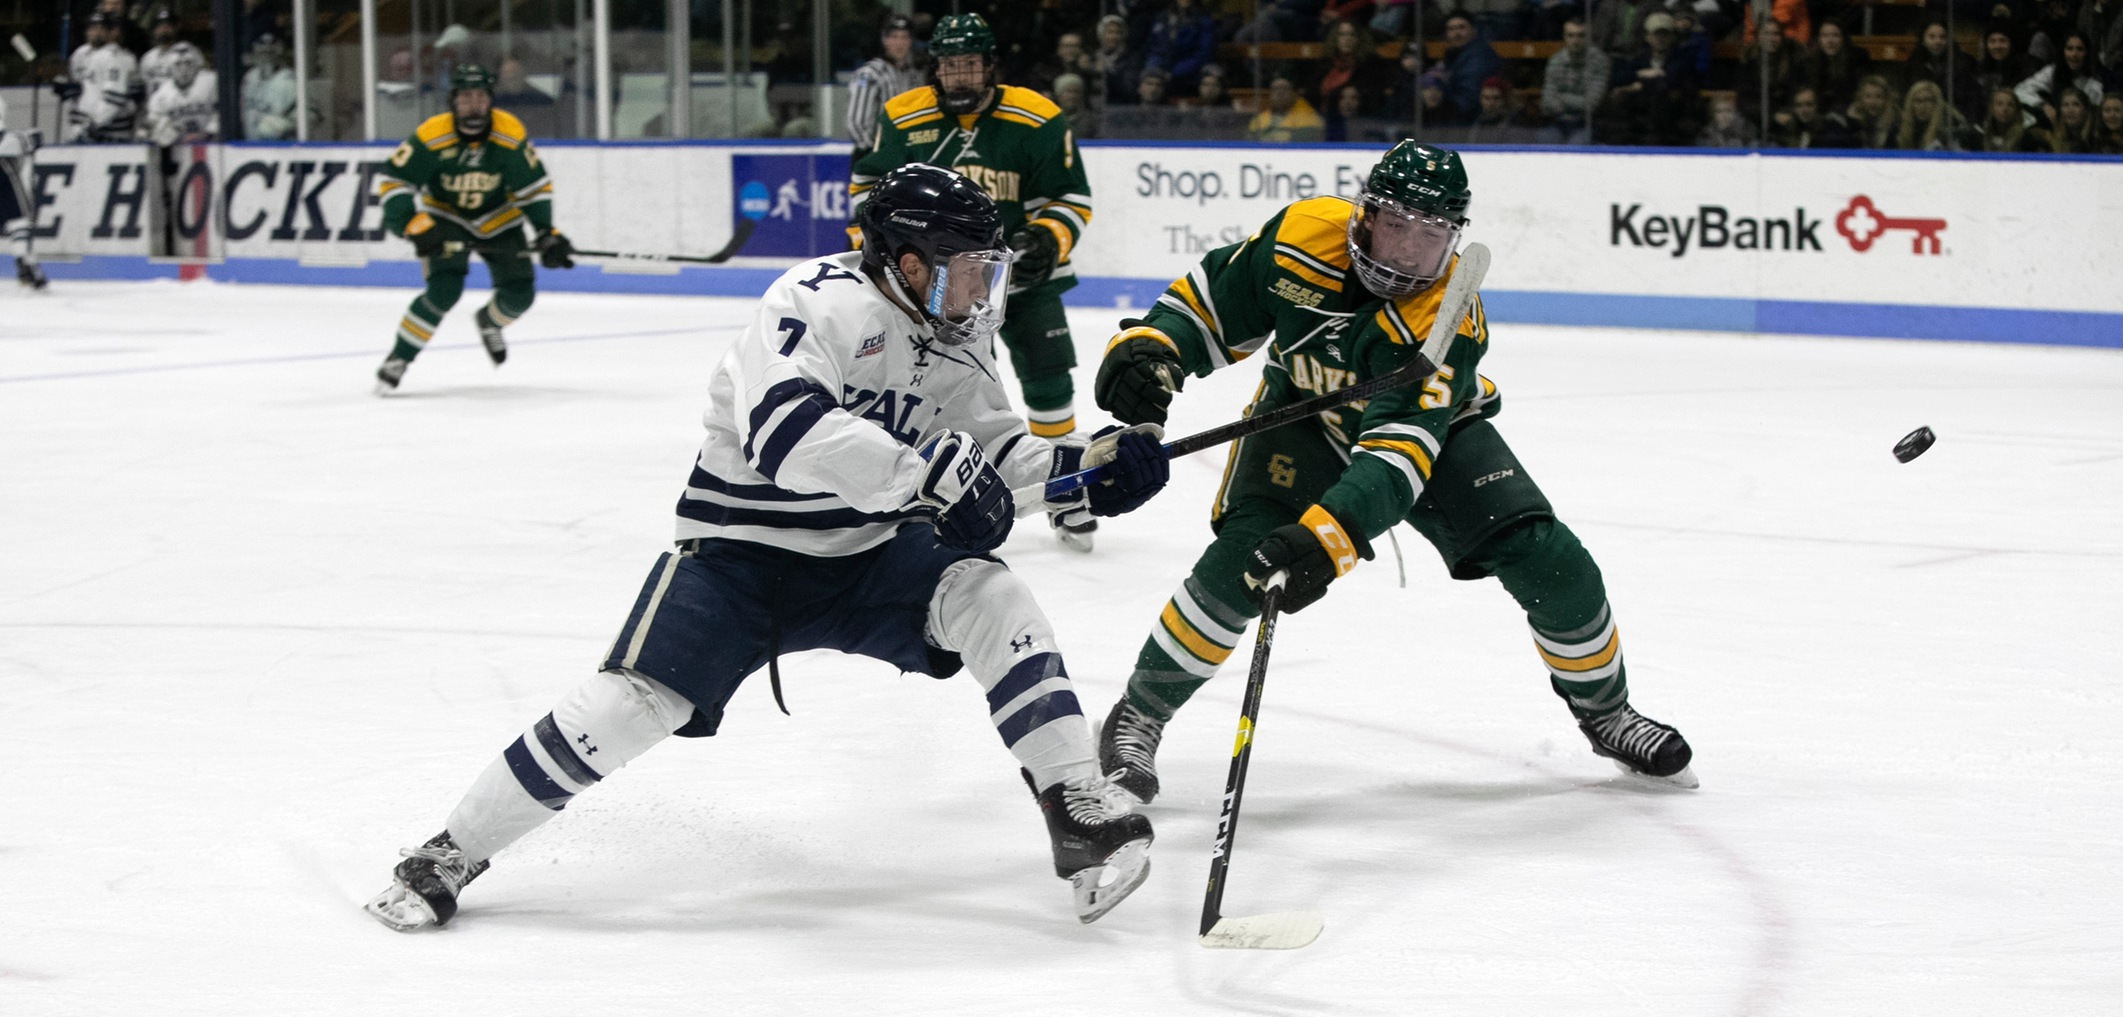 Bulldogs at Clarkson in ECAC Quarterfinals